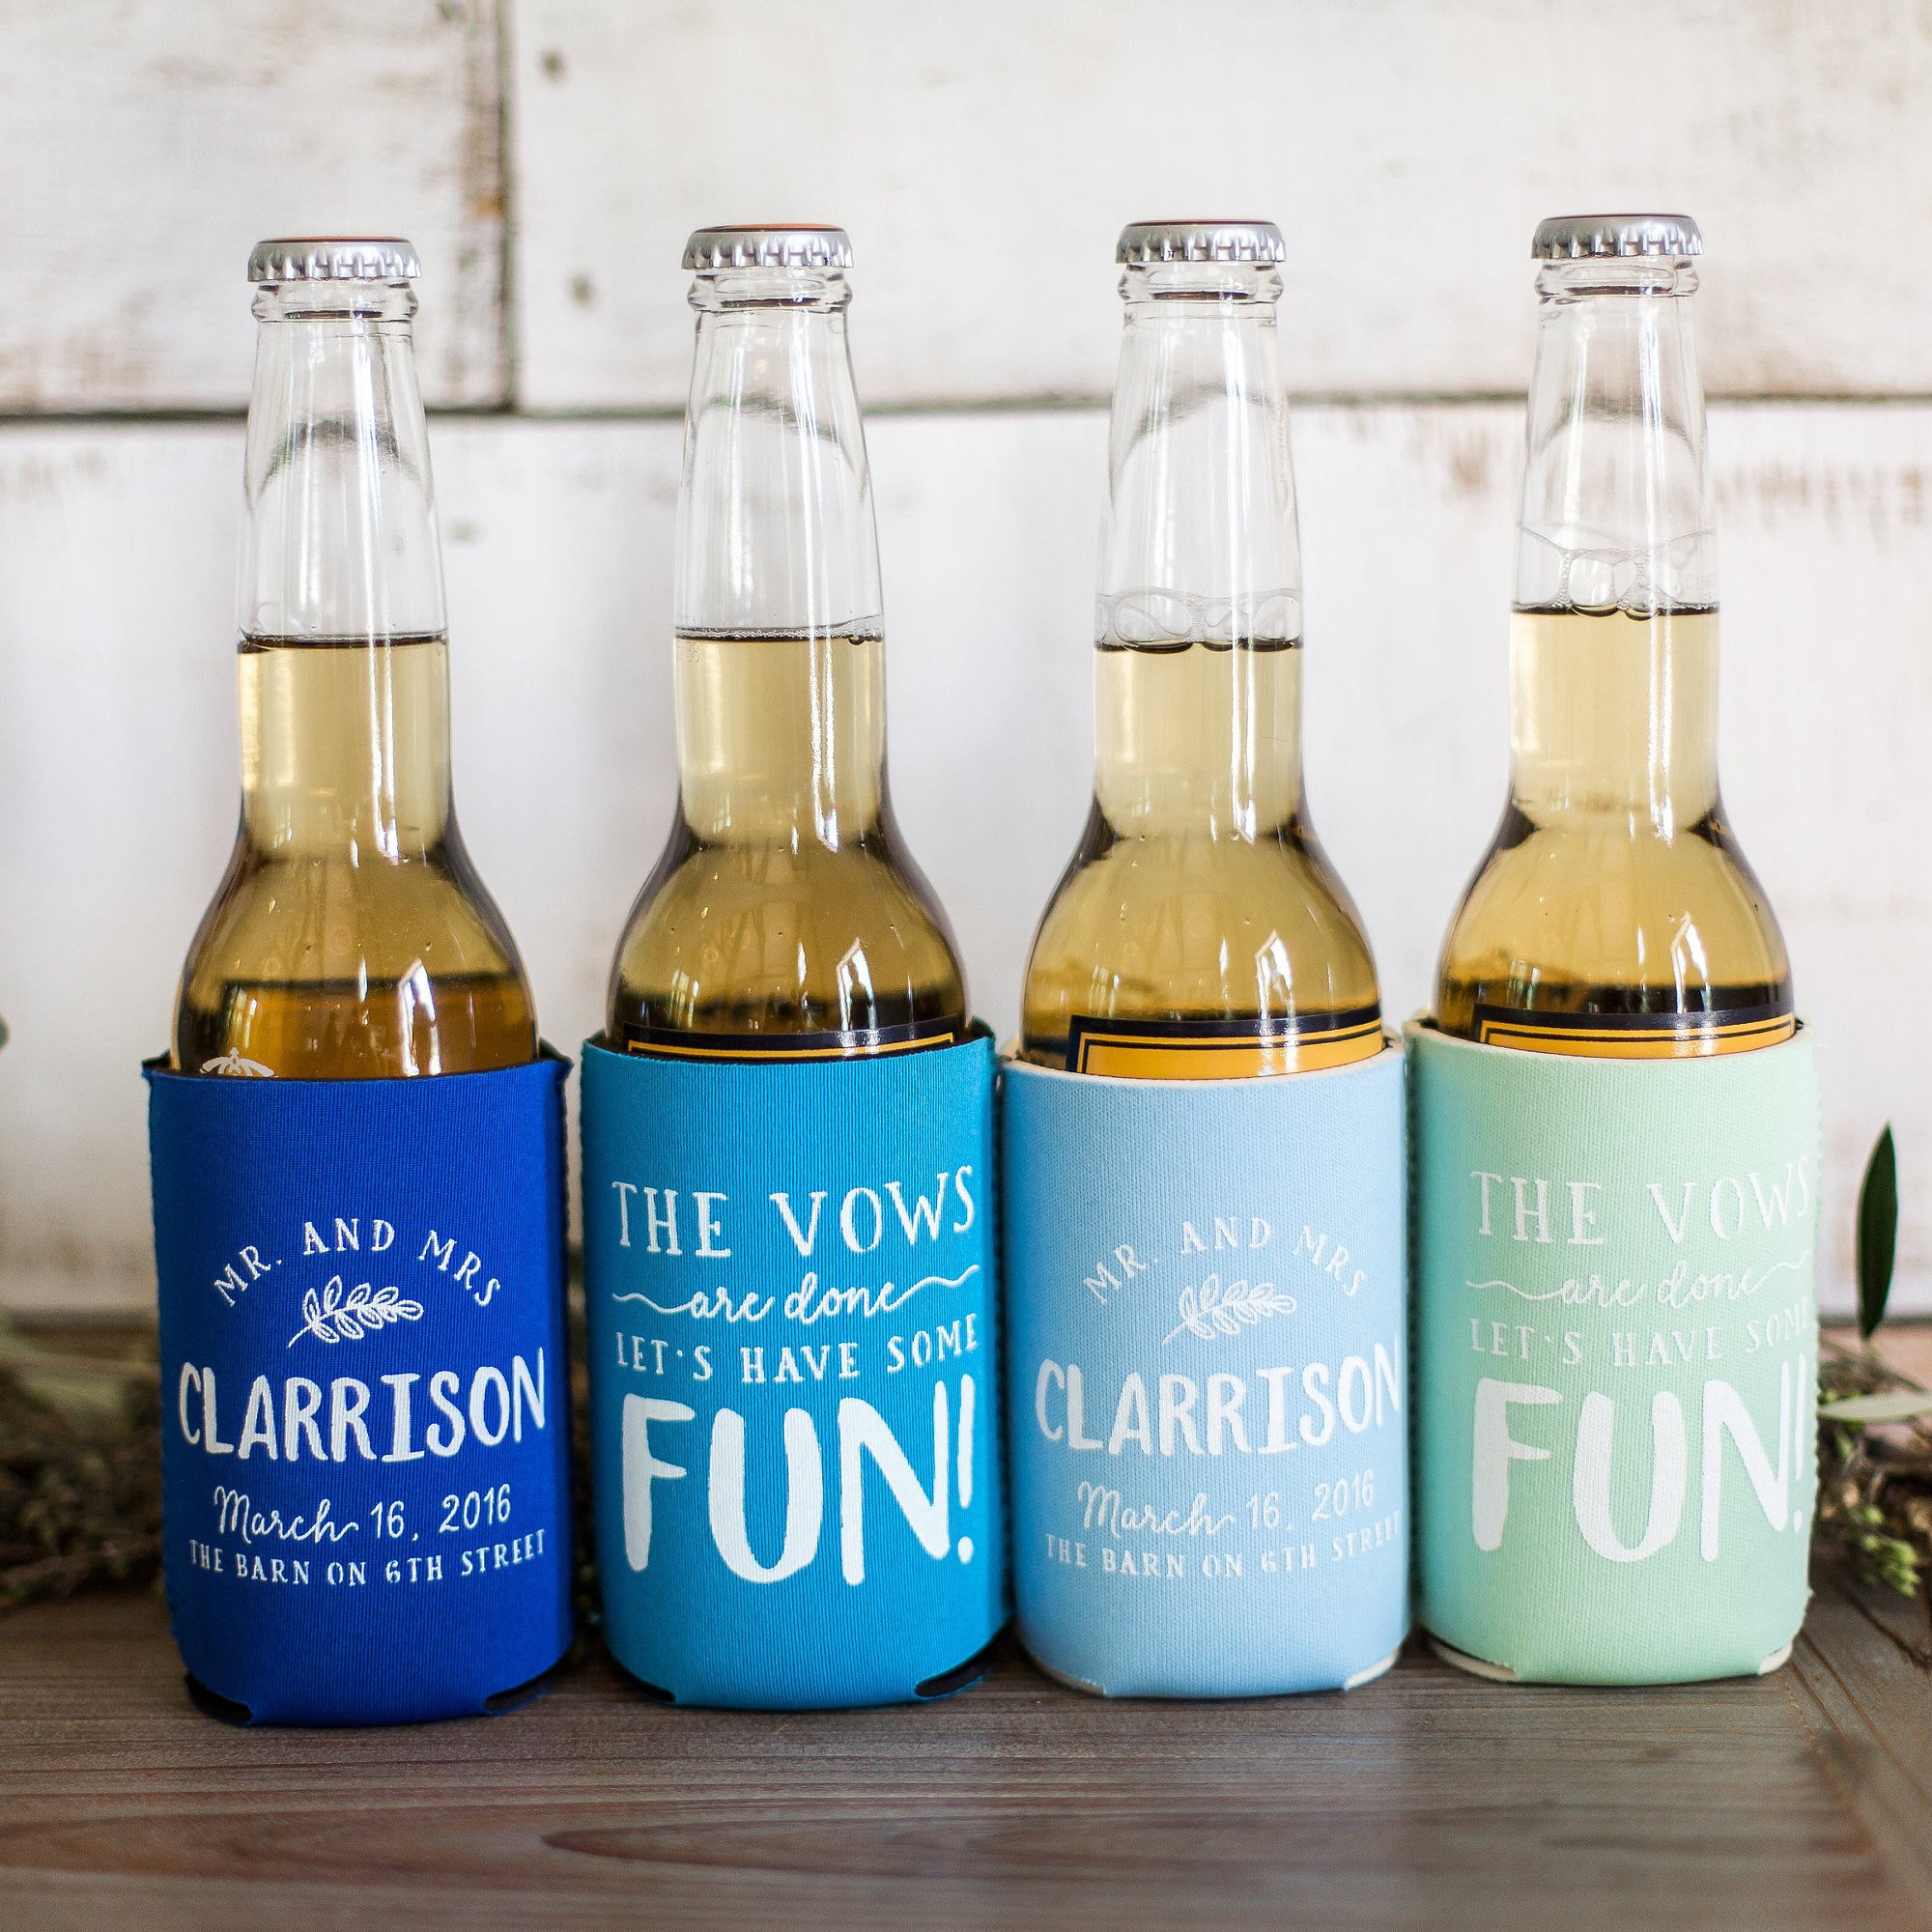 8. Koozies - Make every guests' drink festive with these wedding koozies and send them home with a souvenir they'll use year after year!